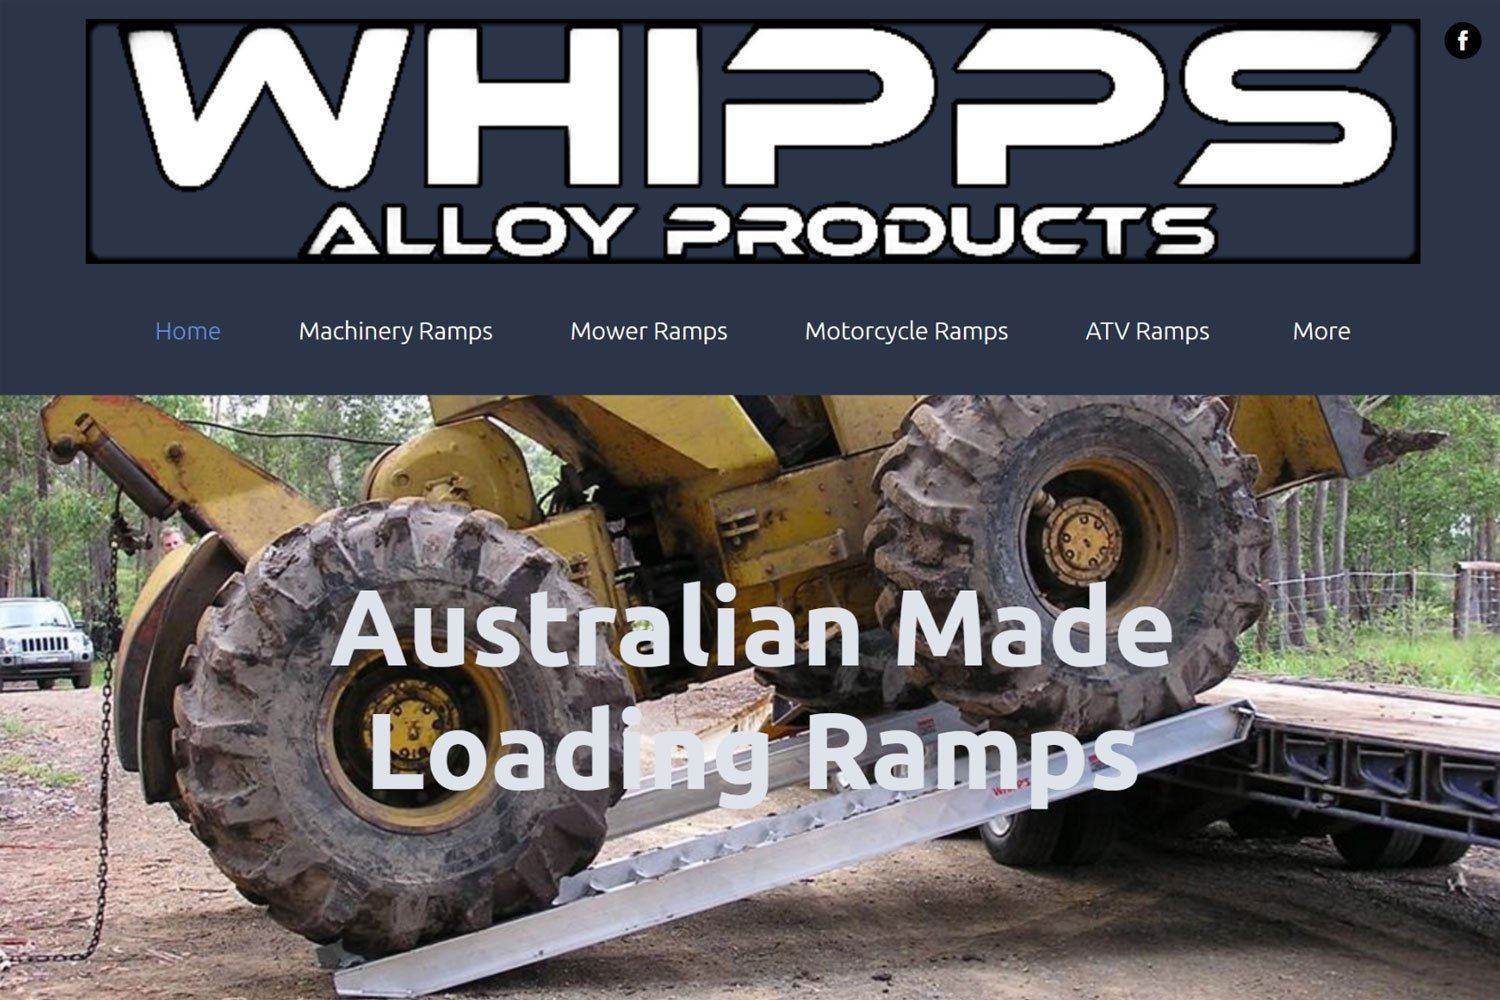 Edgezone Media's Client - Whipps Alloy Products - www.whipps.com.au